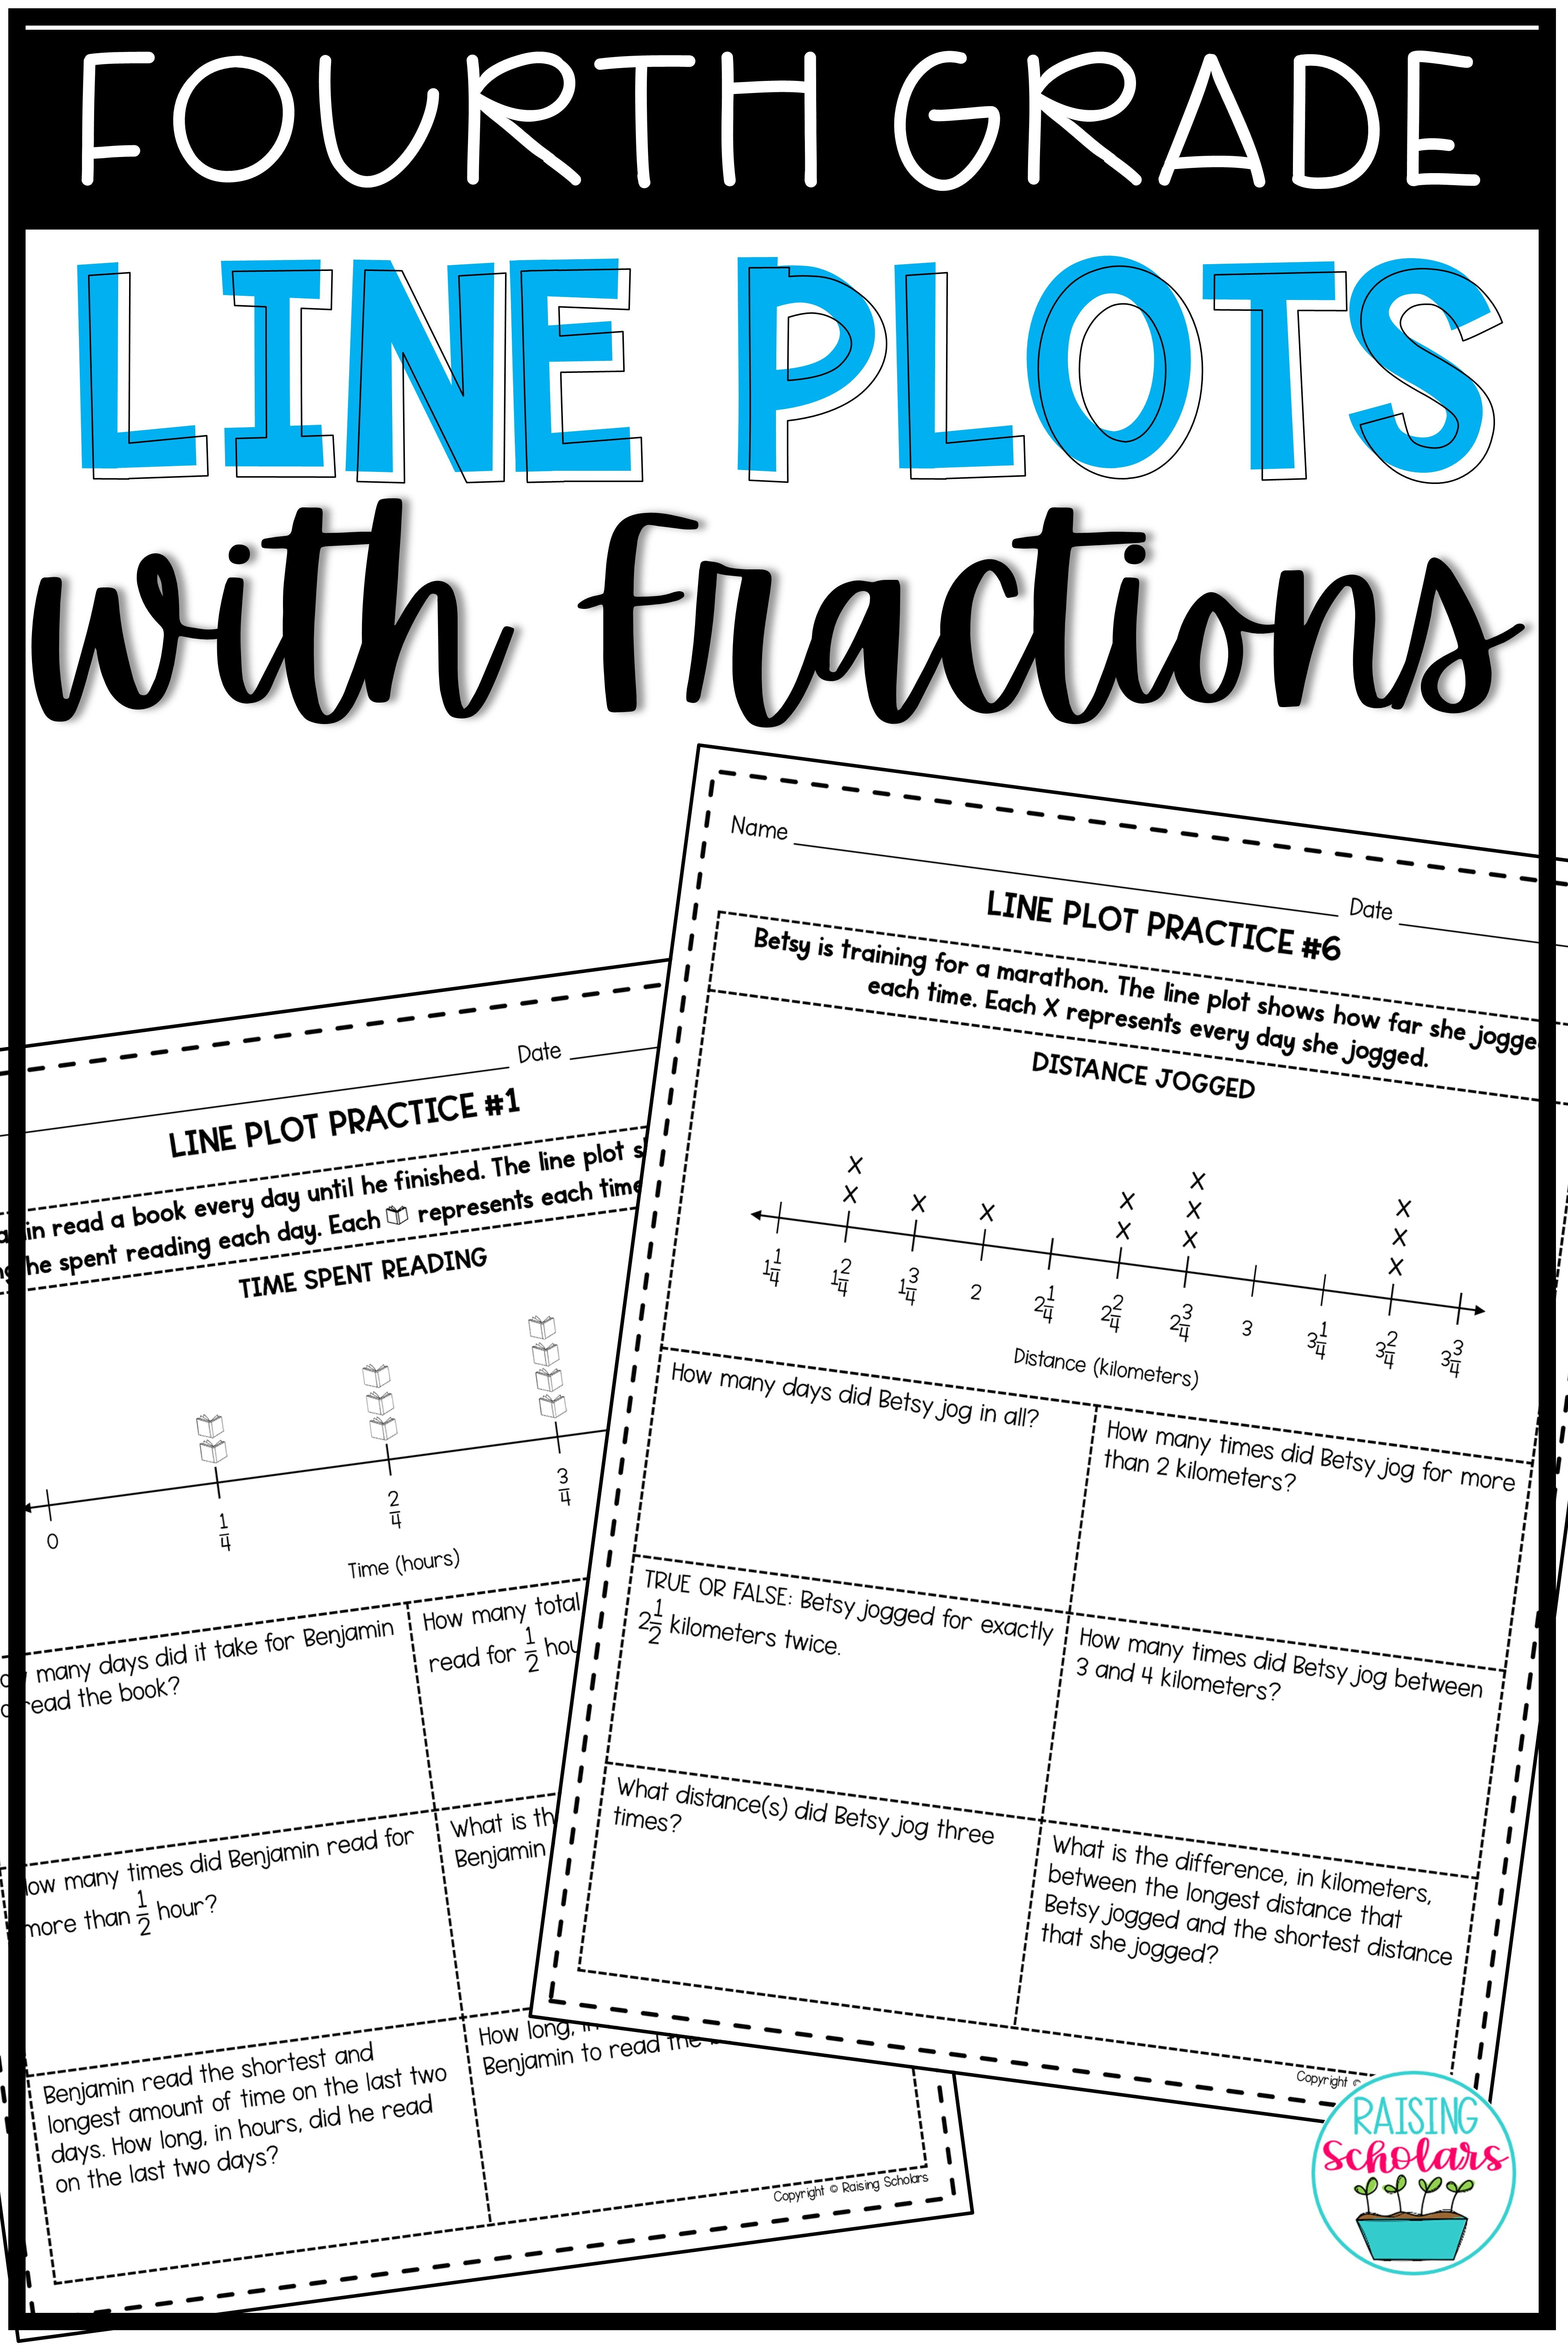 Line Plots With Fractions 4th Grade Distance Learning Fraction Practice Fractions Line Plot Worksheets